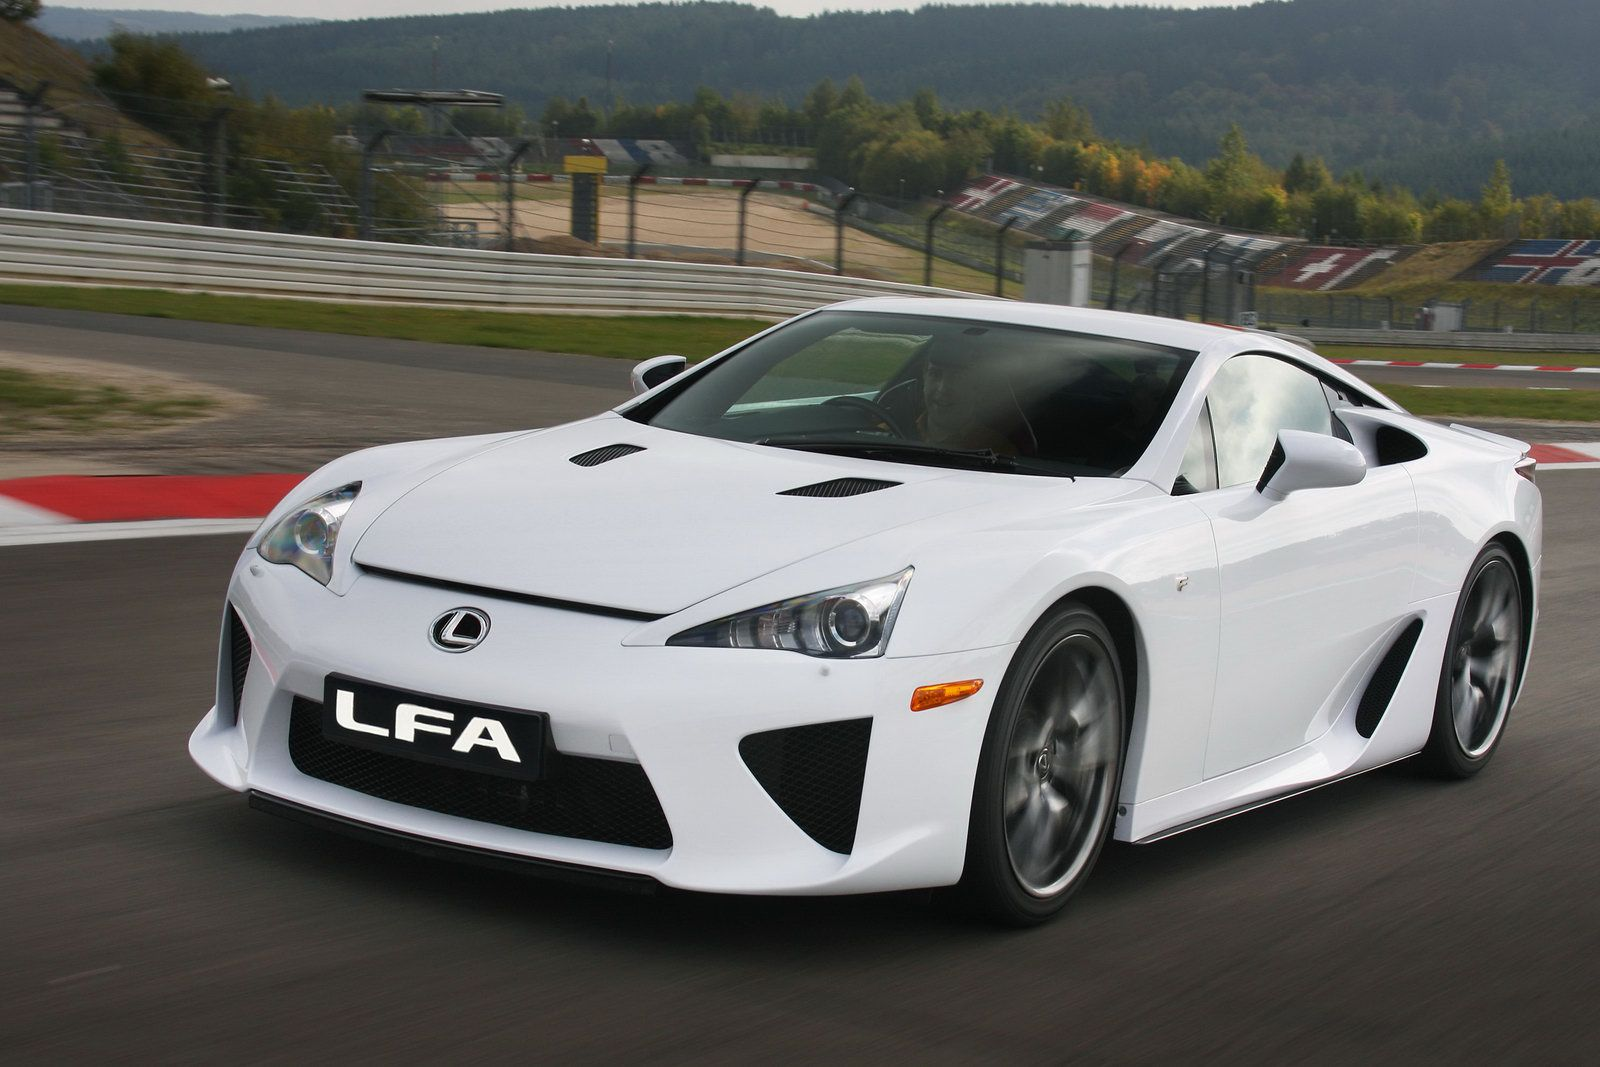 new 2010 lexus lfa supercar officially revealed photos and video it s your auto world new. Black Bedroom Furniture Sets. Home Design Ideas